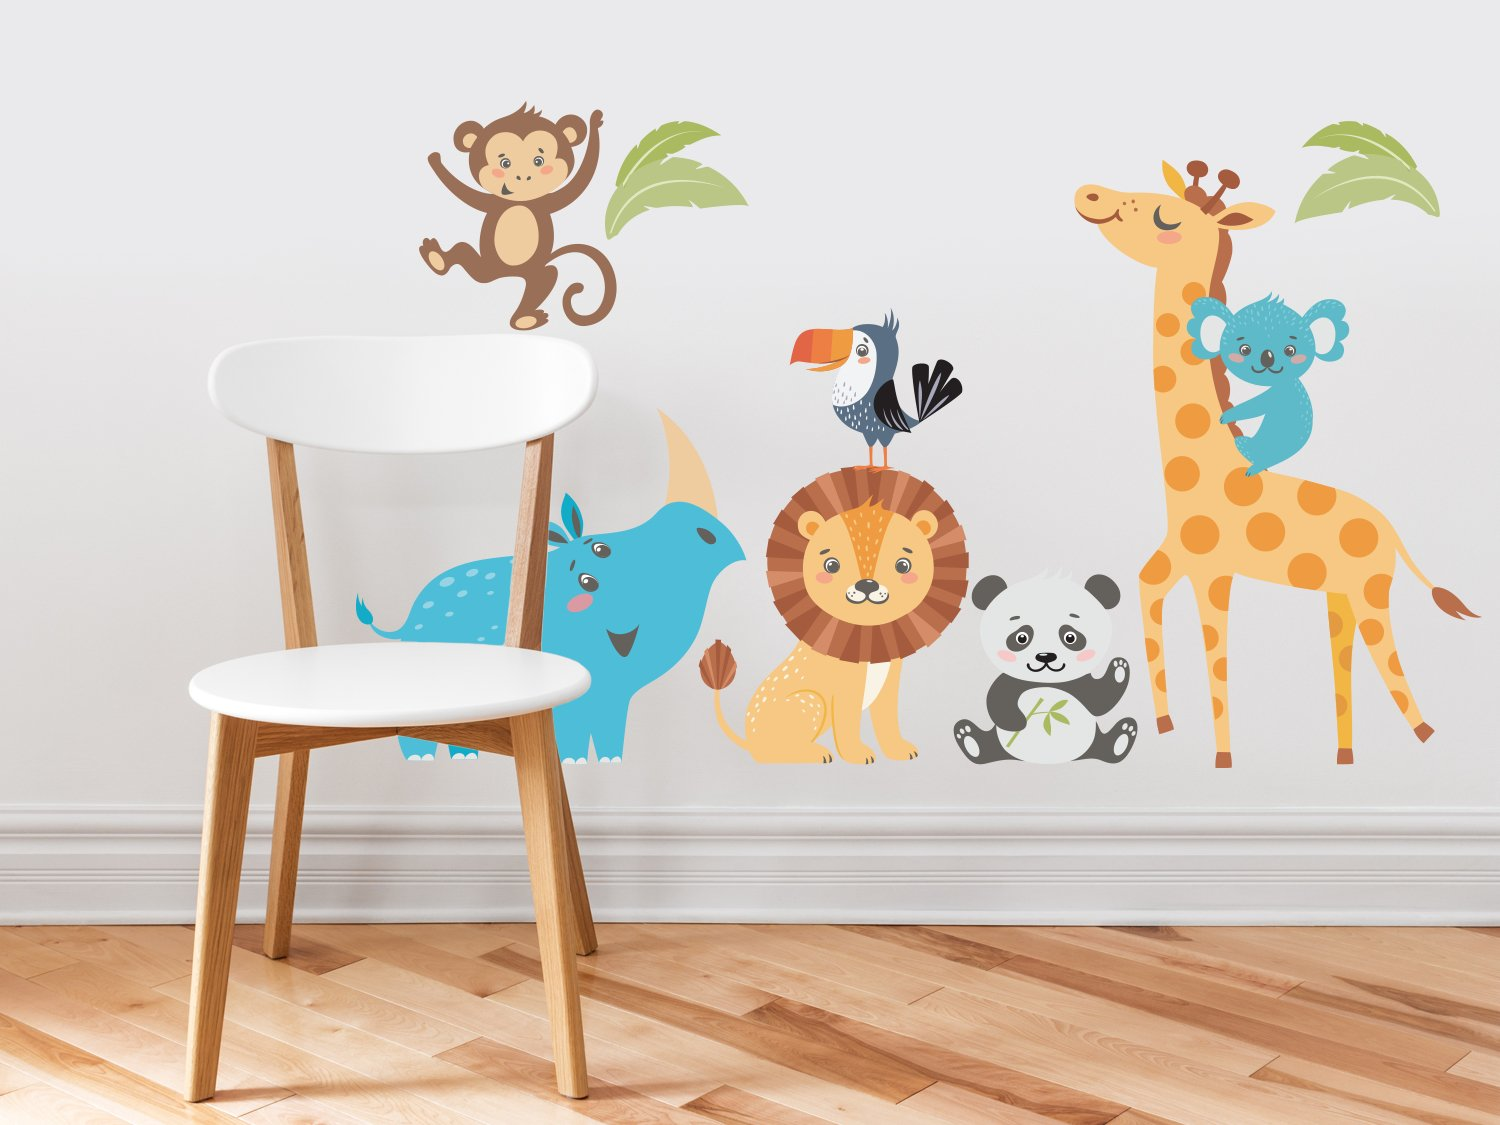 Wild Animal Park Fabric Wall Decals with Panda, Lion, Giraffe, Rhino, Toucan, Koala, and Monkey, Animal Wall Sticker, Non-Toxic, Removable, Reusable, Respositionable